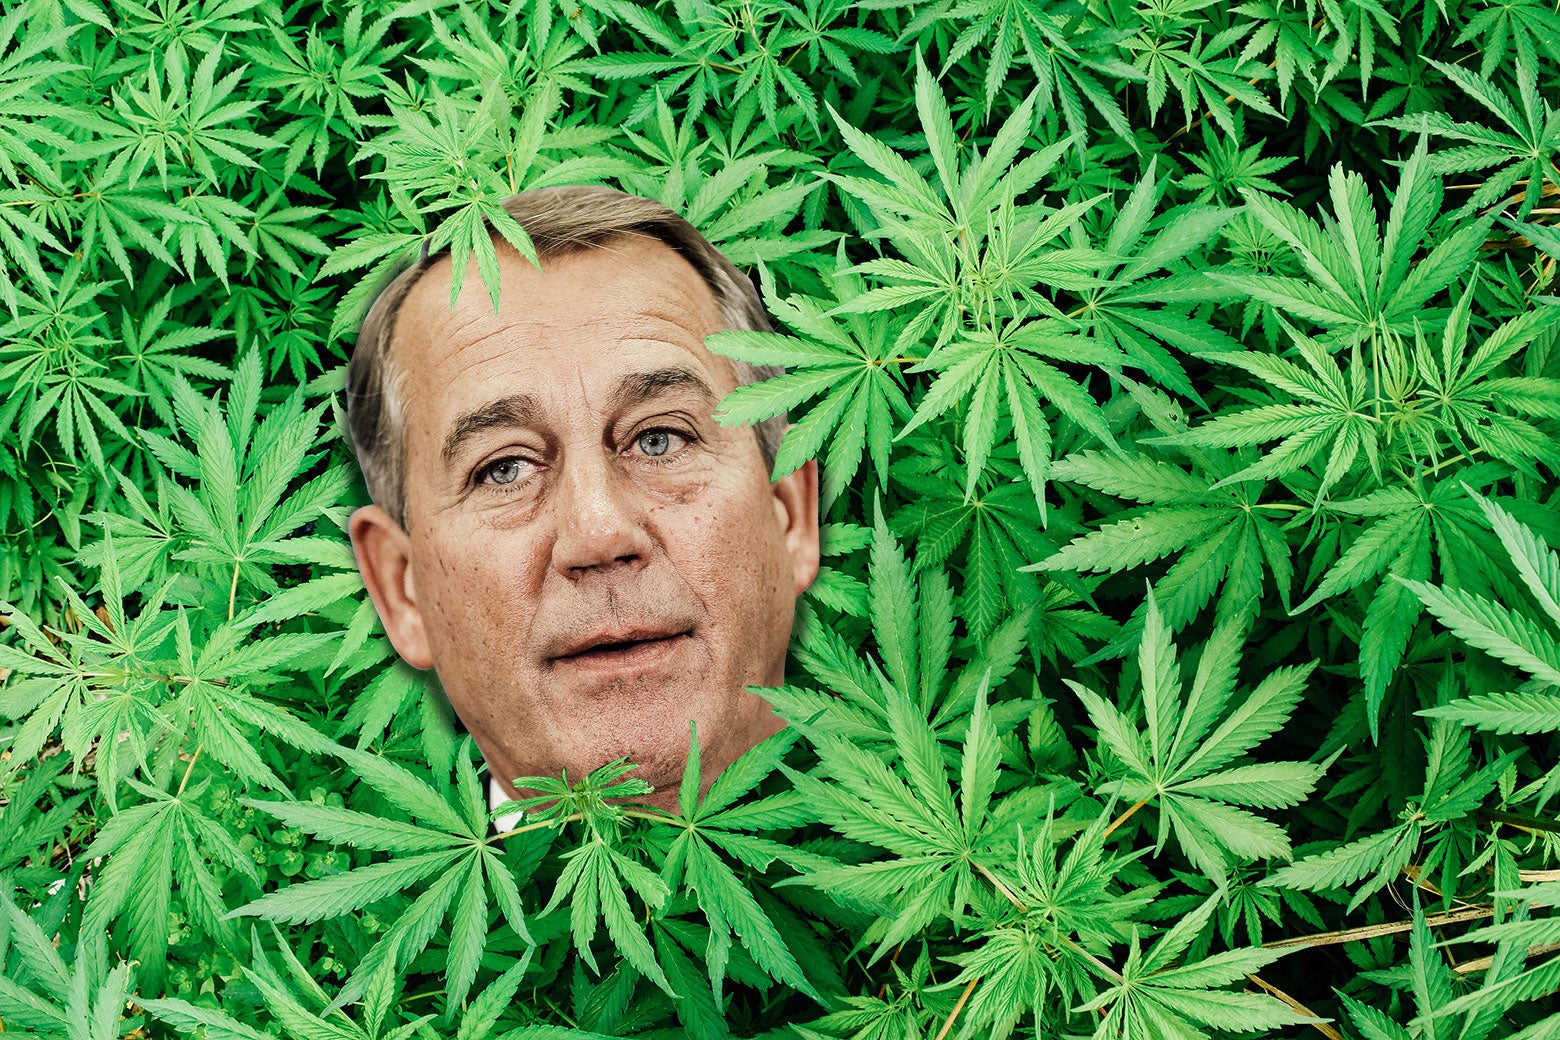 John Boehner's head superimposed on a bunch of marijuana plants.